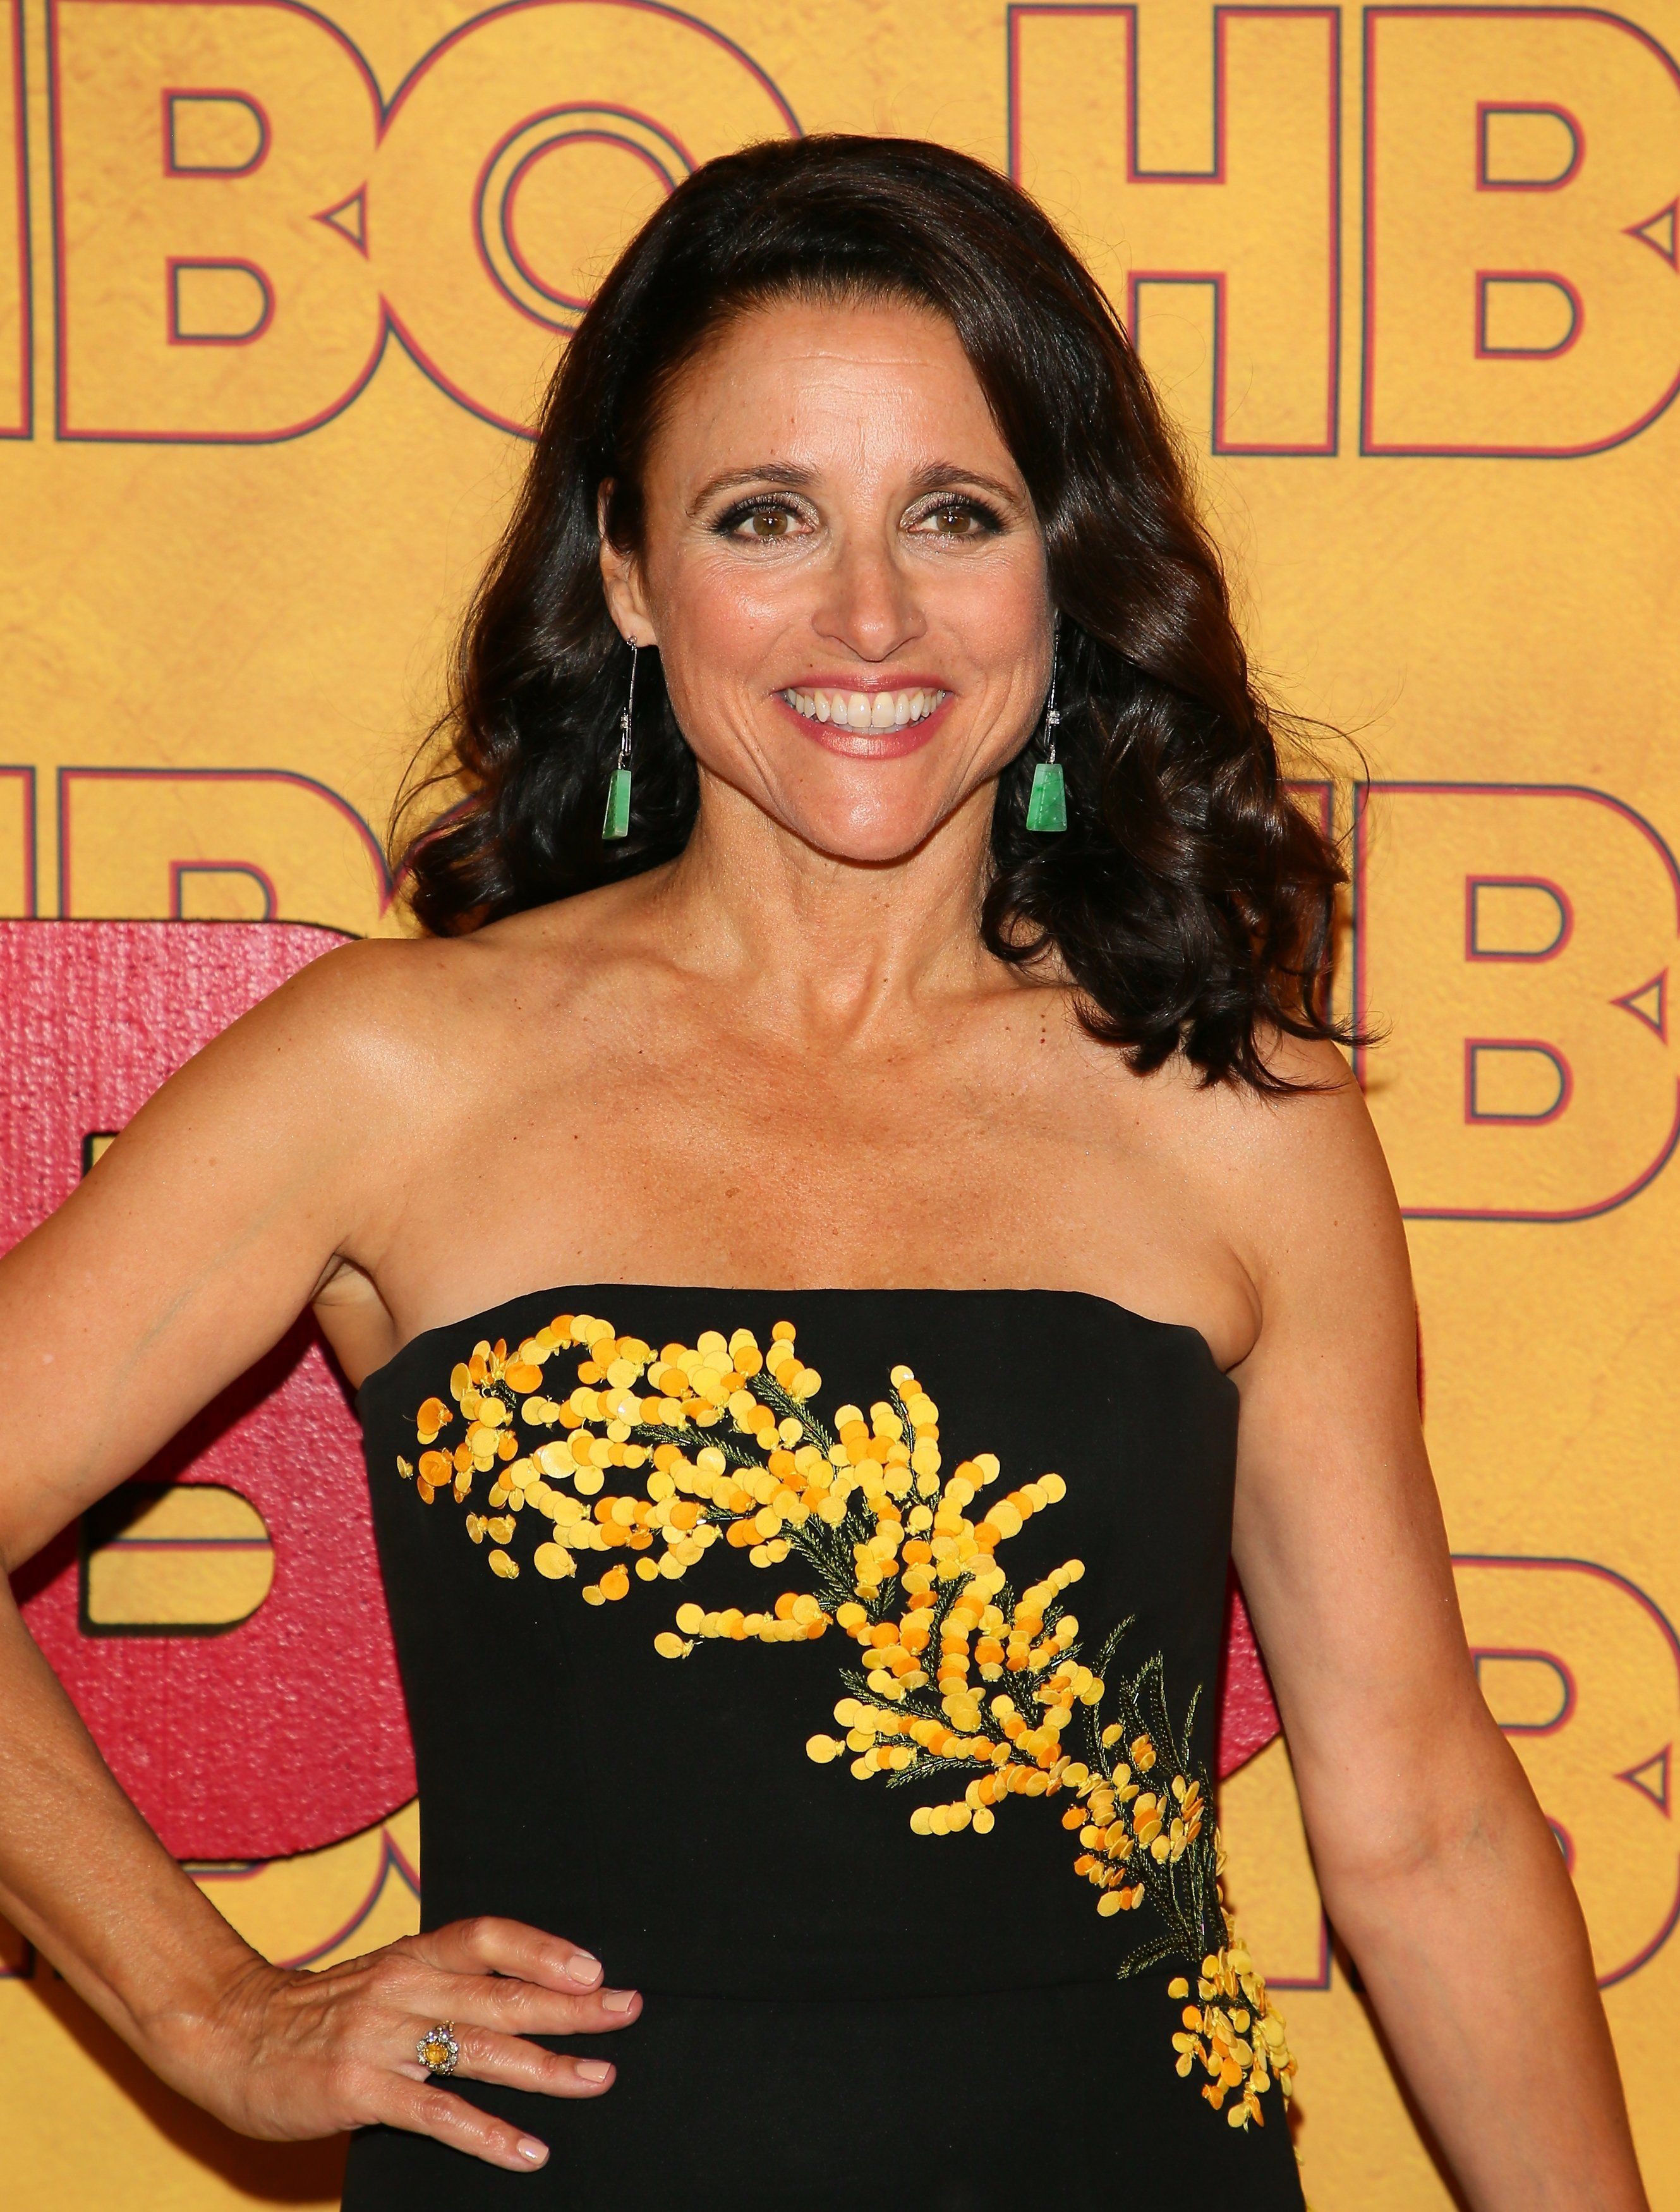 Julia Louis-Dreyfus Thanks Fans And Friends For Support After